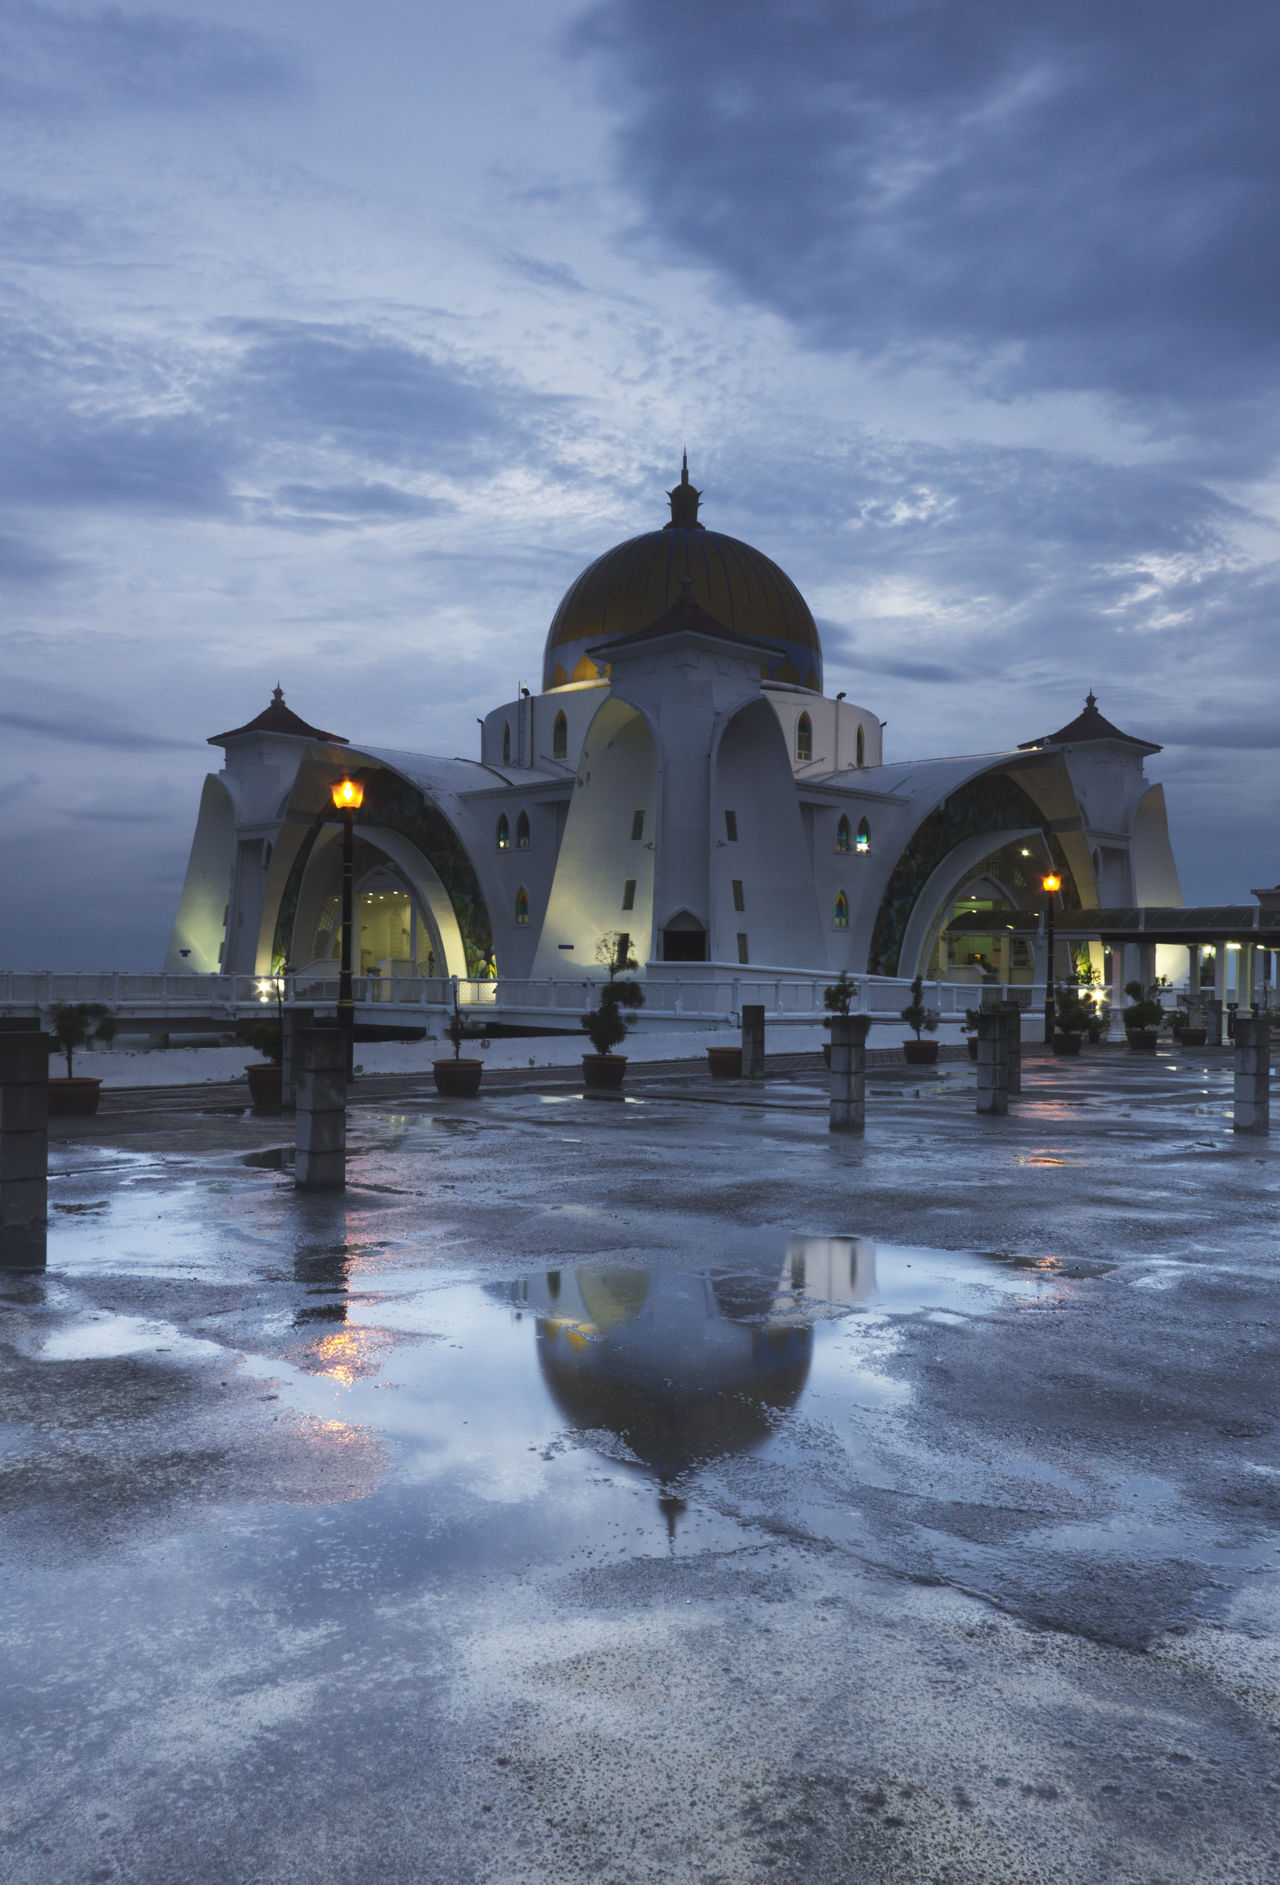 Reflection of dome after rain on tarmac. Architecture Building Exterior Built Structure Cloud - Sky Cold Temperature Day Dome Islam, Muslim, Mosque, Islamic, Religion, Ramadhan, Eid, Ramadan, Arabic, Faith, Religious, Prayer, Architecture, Arab, Background, Pray, Mubarak, Worship, Culture, Building, Traditional, Design, Arabian, Holy, Masjid, Spiritual, East, Sky, Landmark, Asia Nature No People Outdoors Place Of Worship Religion Sky Snow Spirituality Travel Destinations Water Winter